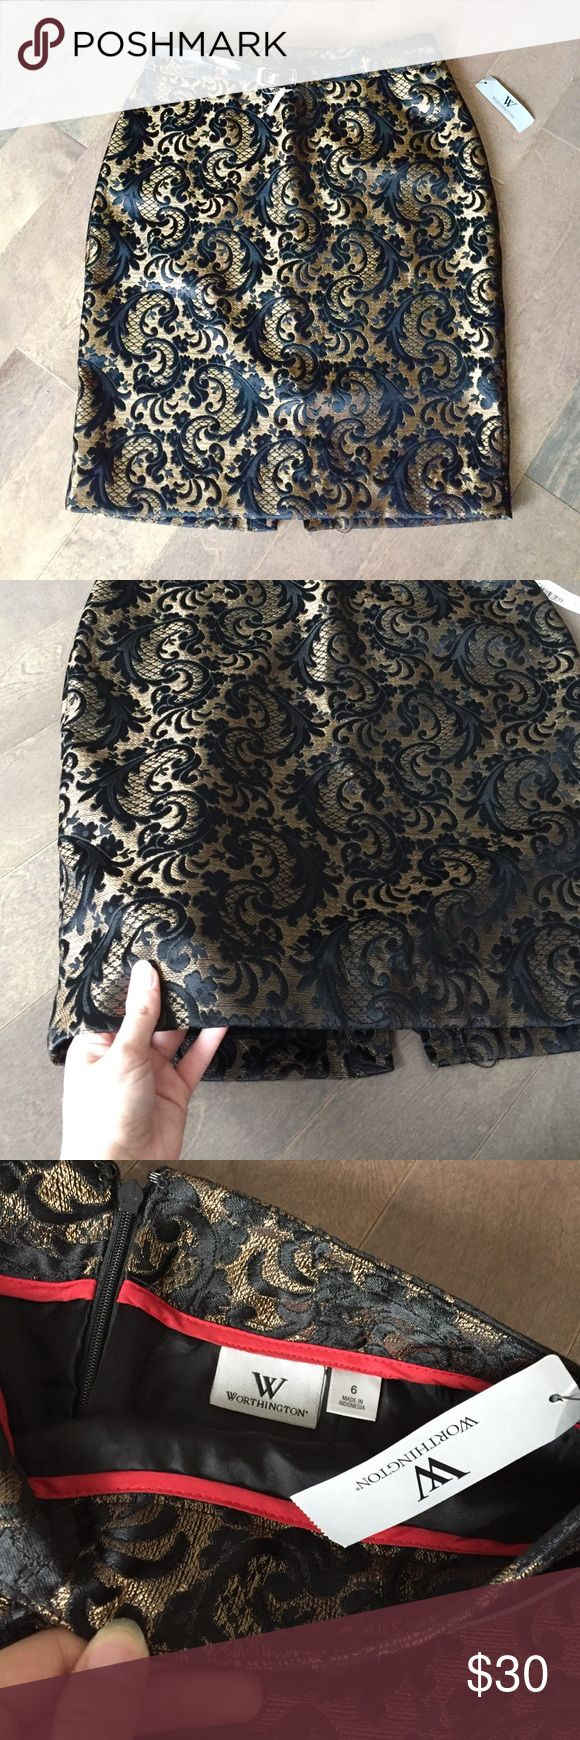 Black and Gold Pencil Skirt! Stunning black and gold patterned pencil skirt. Brand new with tags! Perfect for fall. Comes with a detachable belt and zips up the back. Size 6. Worthington Skirts Pencil